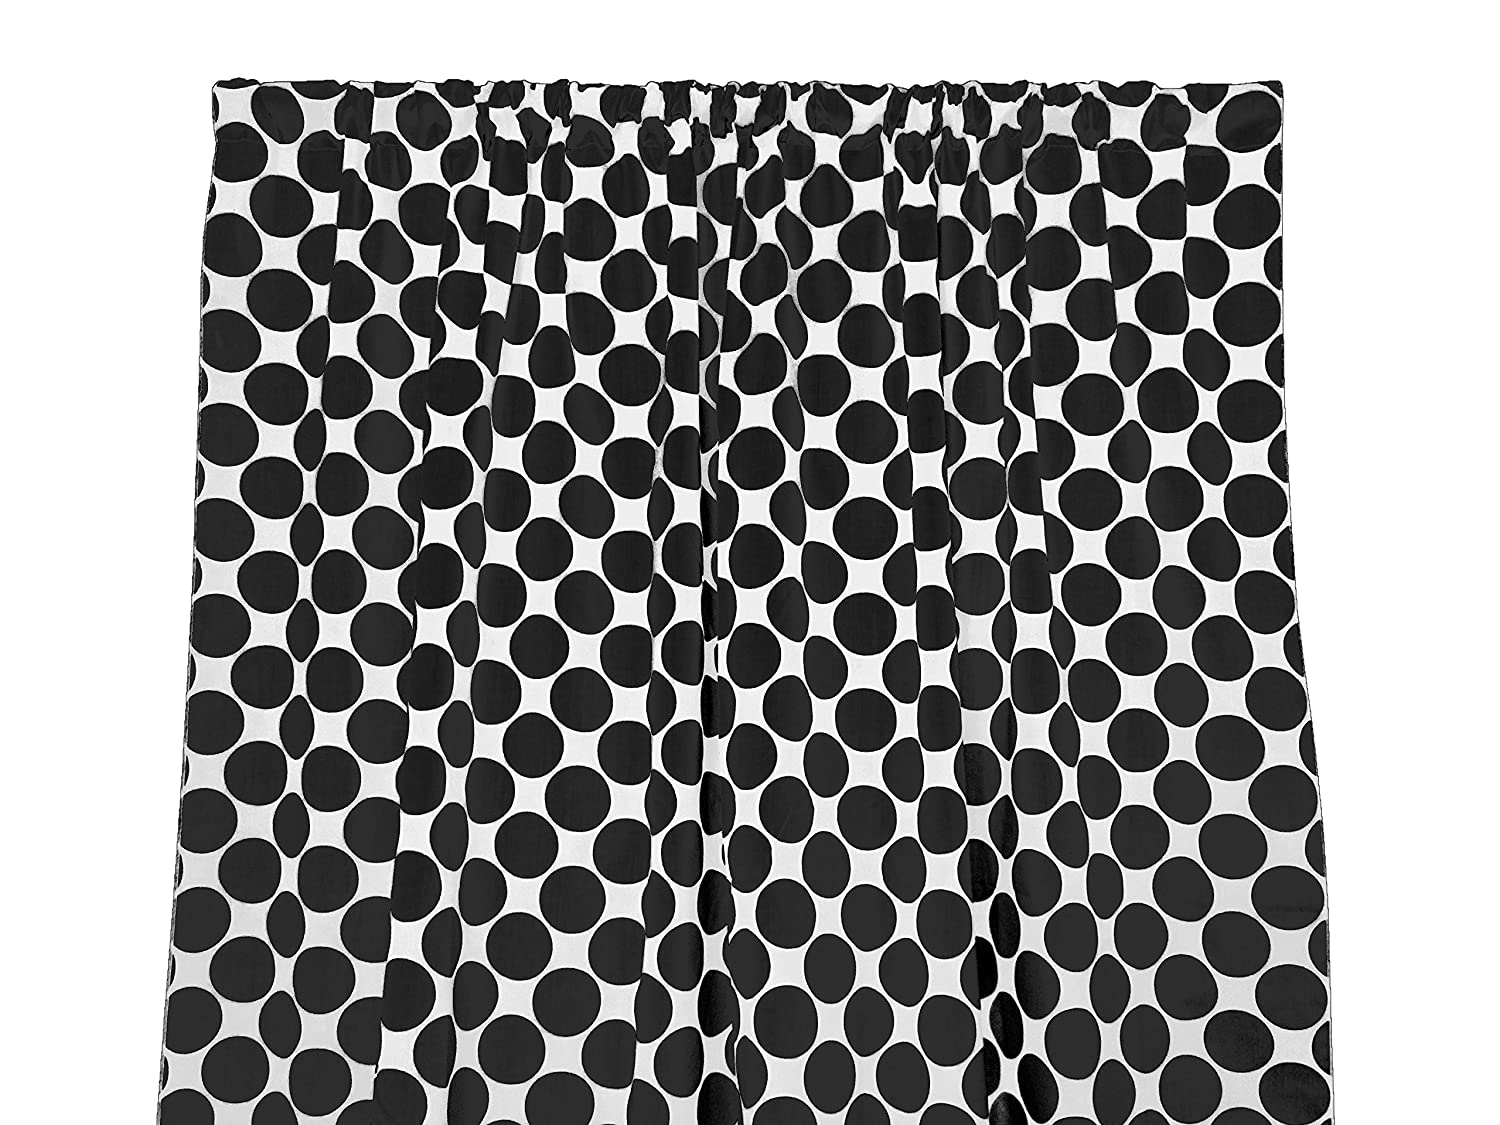 Zen Creative Designs Premium Cotton Large Polka Dot Curtain Panel / Home Window Decor / Window Treatments / Large / Dots / Spots (58 Inch x 36 Inch, Black White)